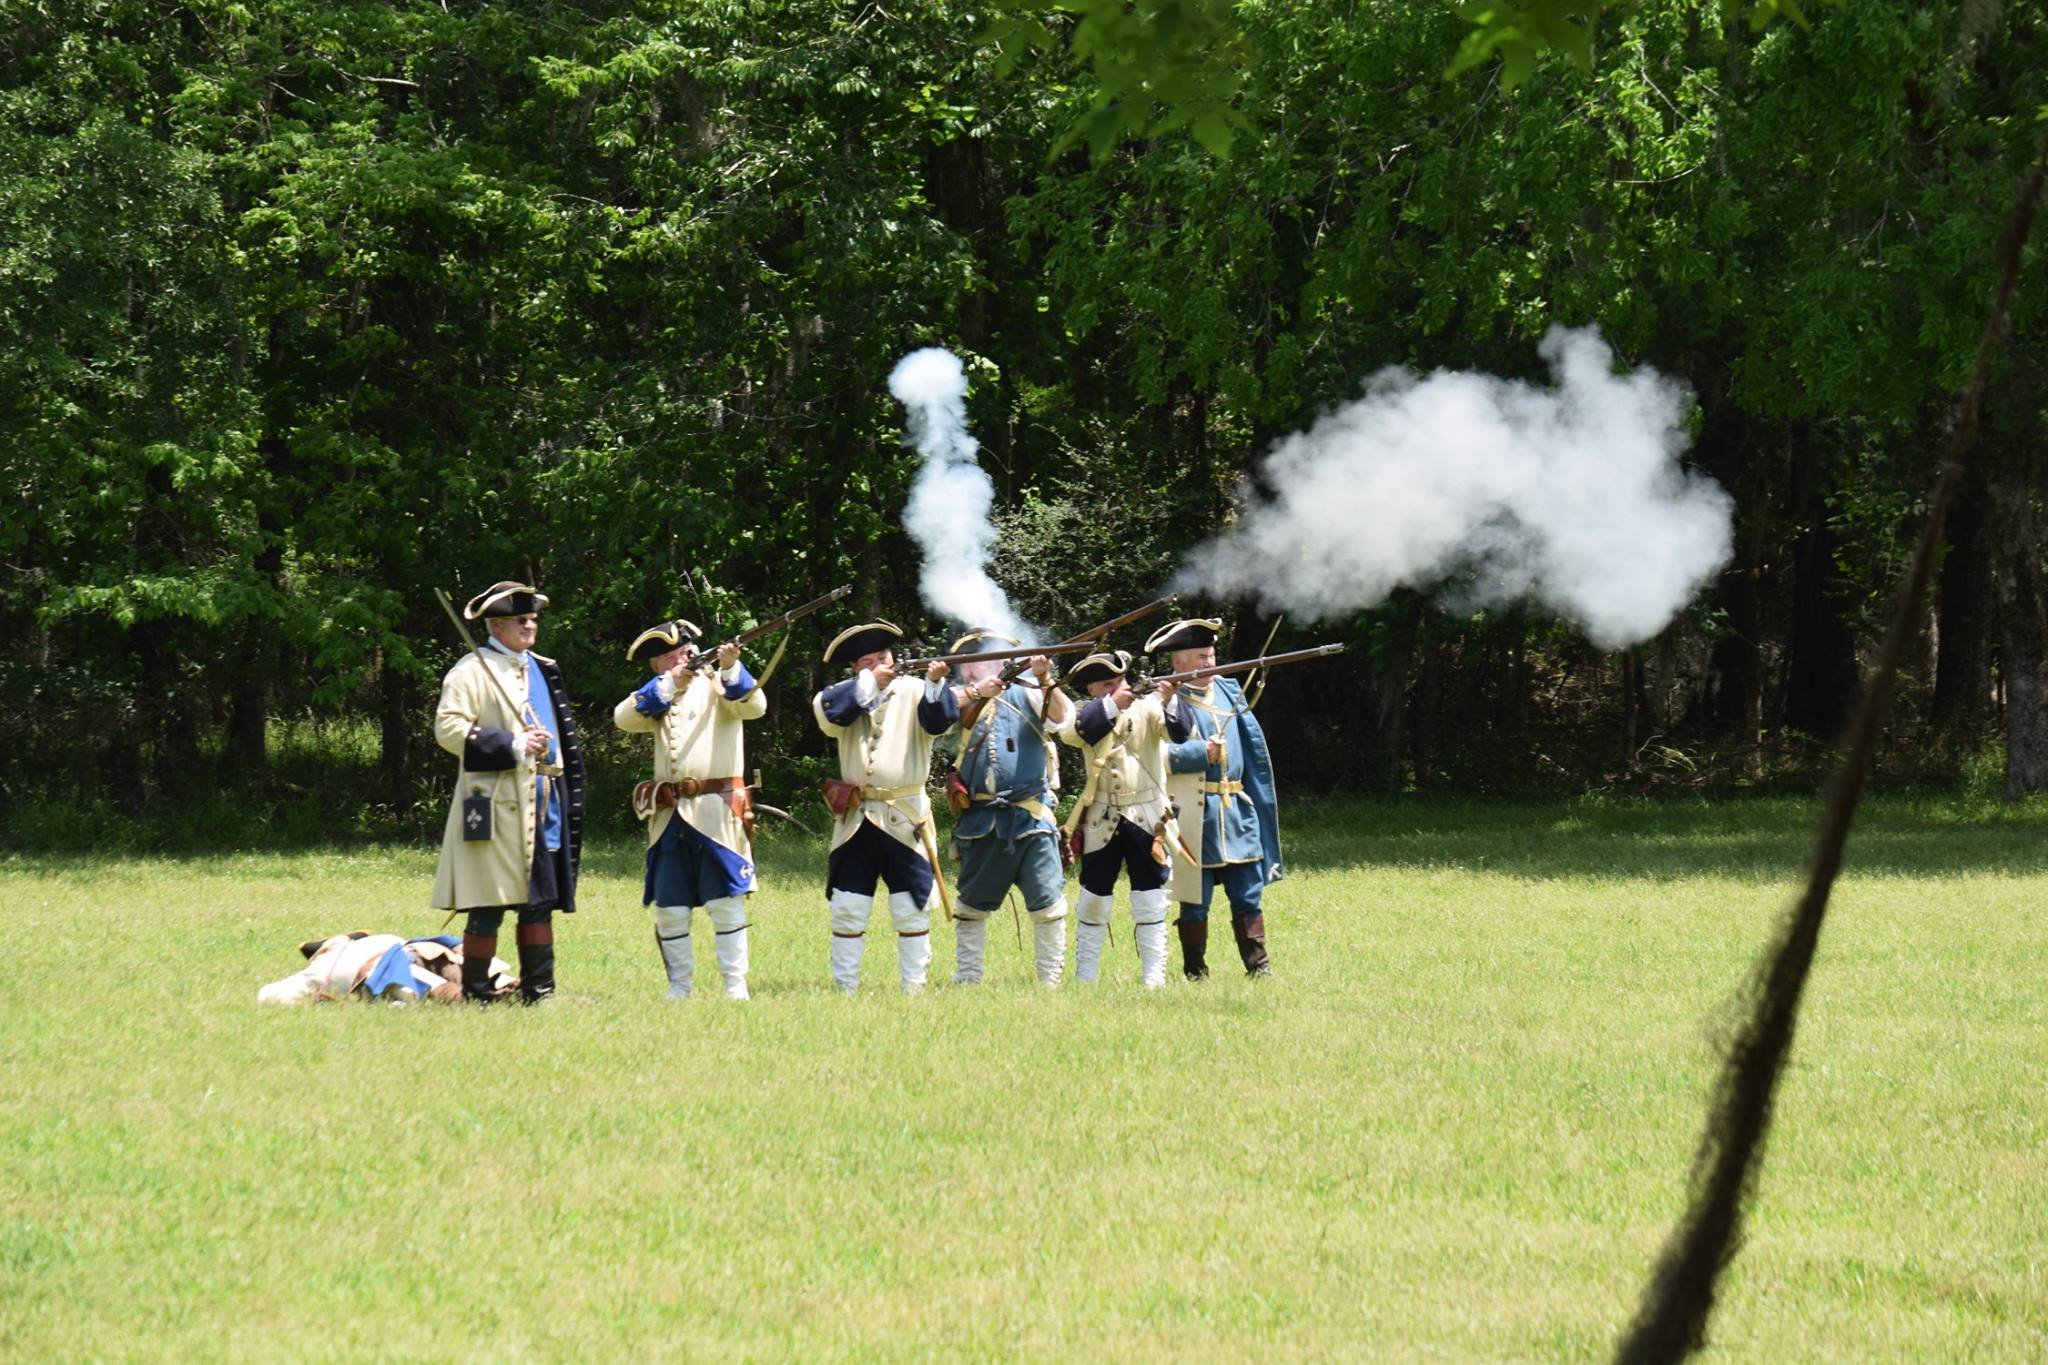 The site offers a variety of events throughout the year, including historical reenactments.